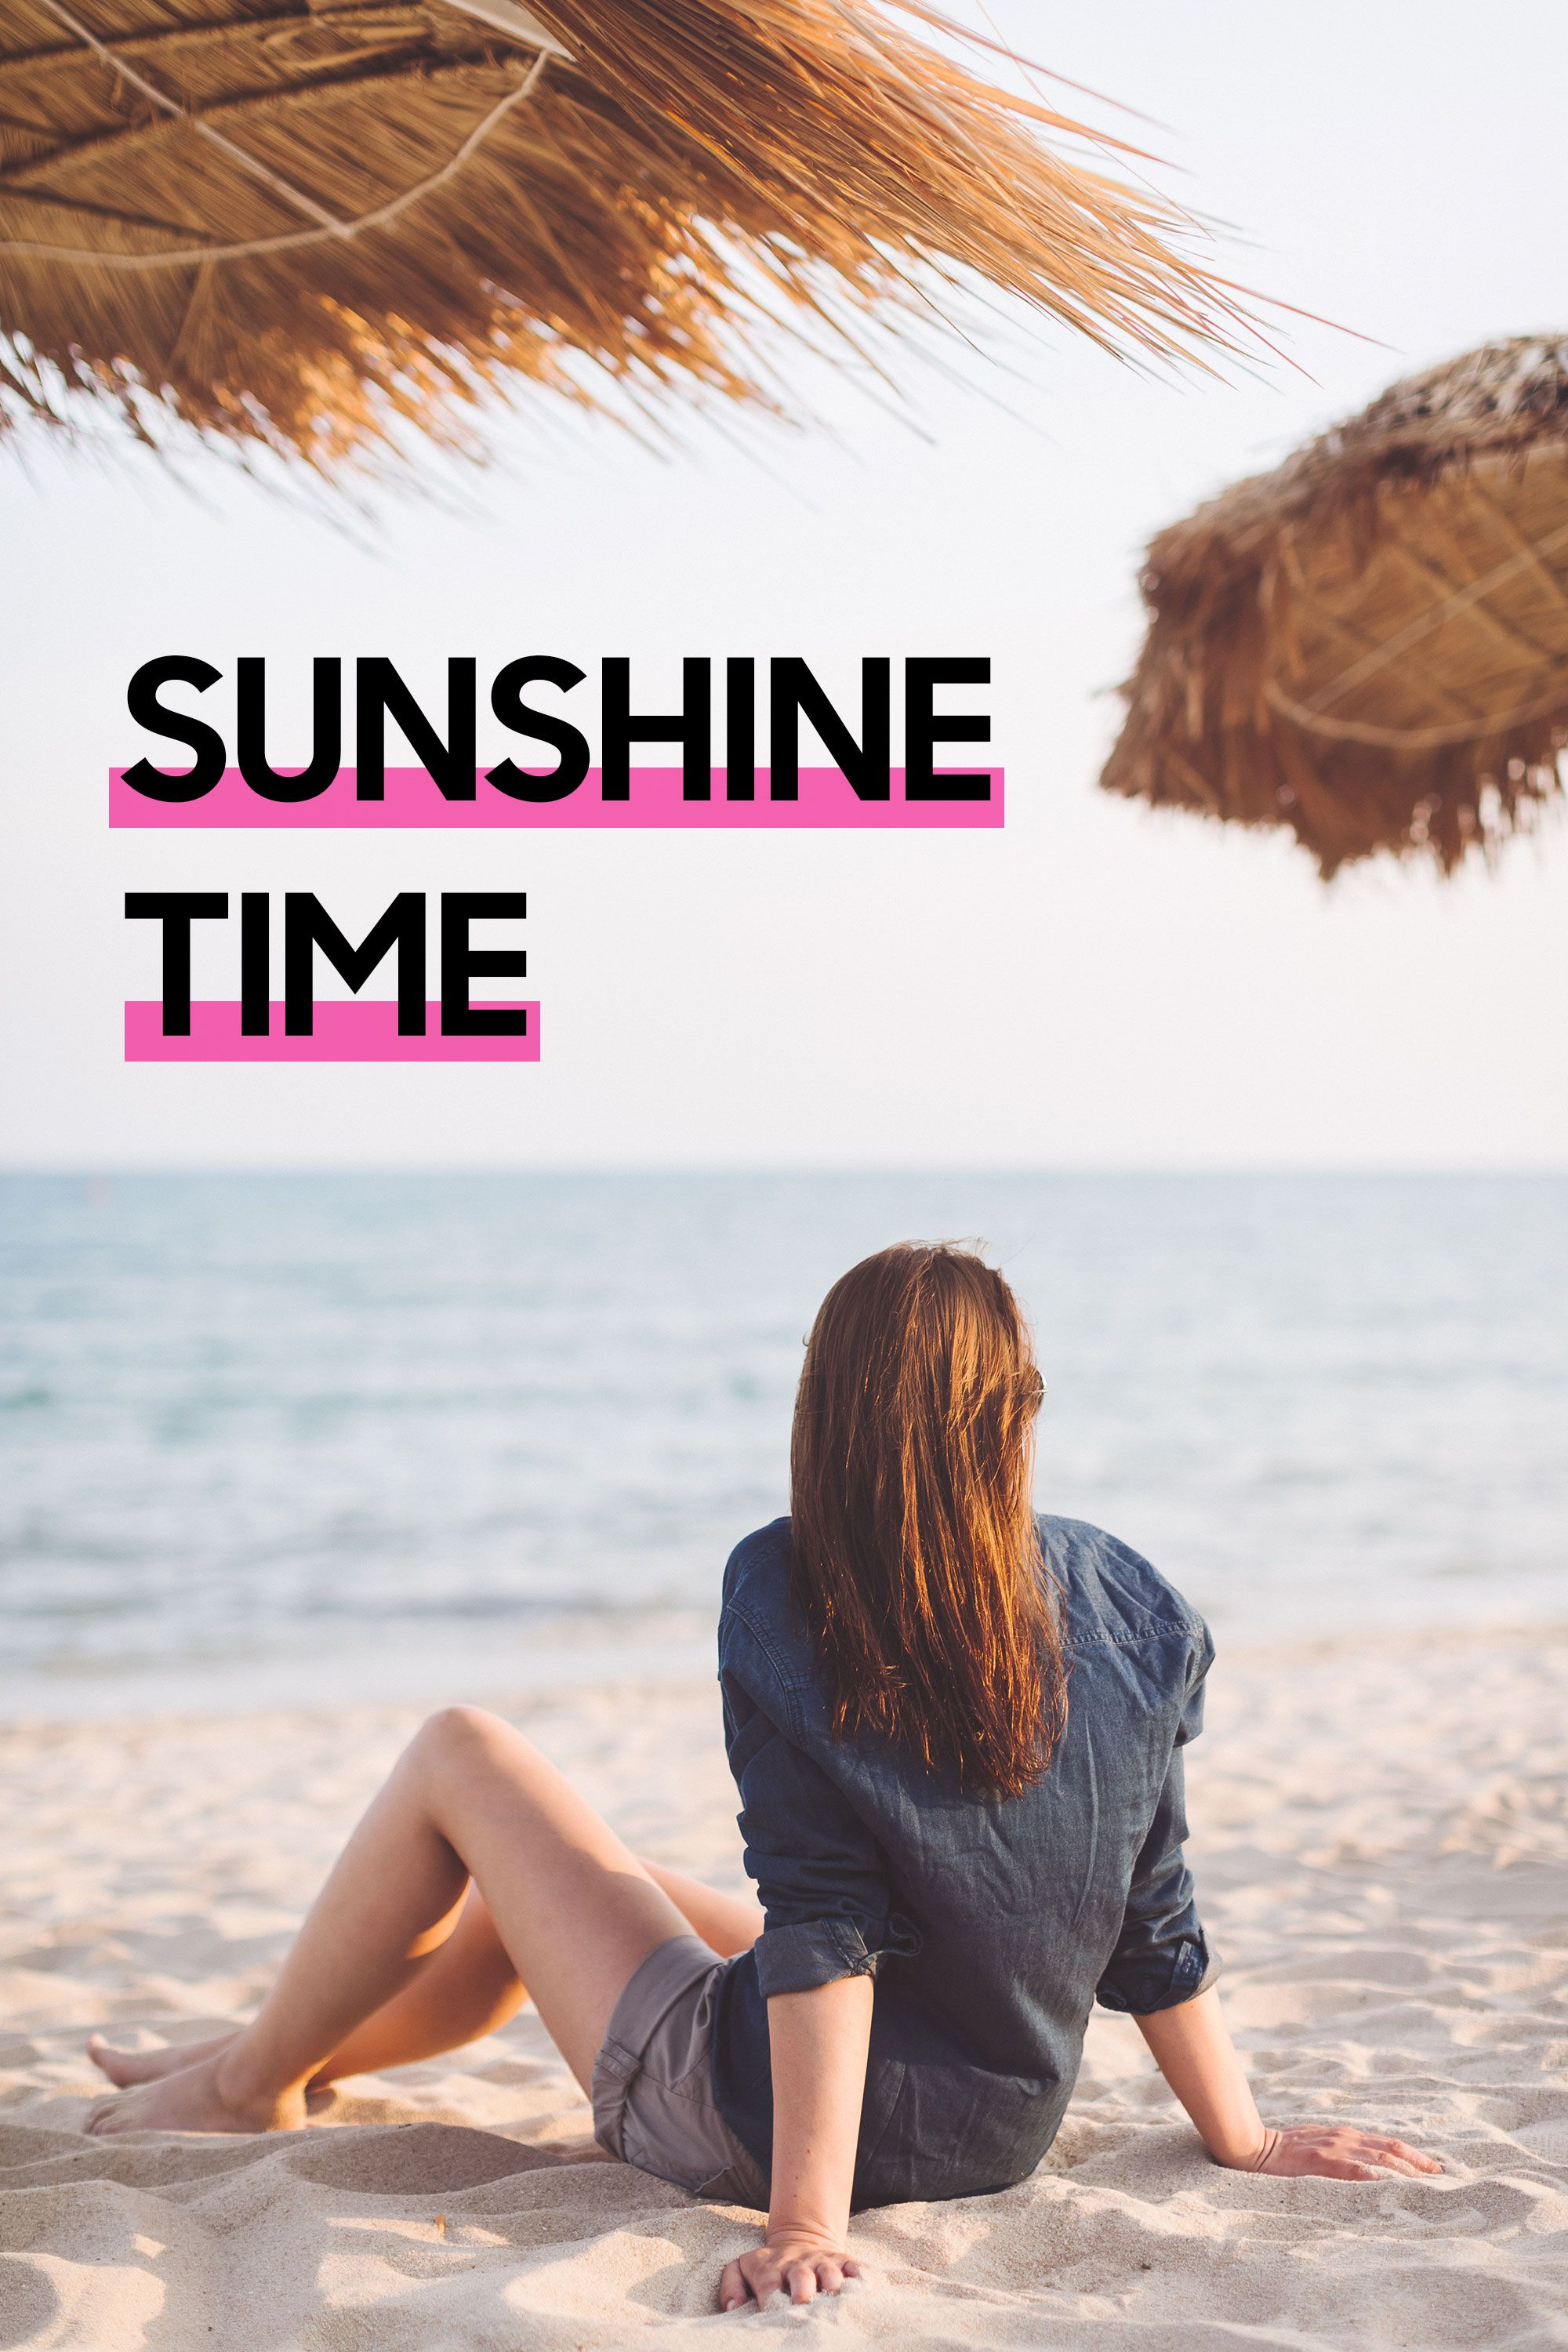 <p>Briefexposureto sunlight hasmultiple benefits, like your boosting mood and supporting heart and overall health. Talk to your doctor about sun exposure, and wear SPF 30+.</p>